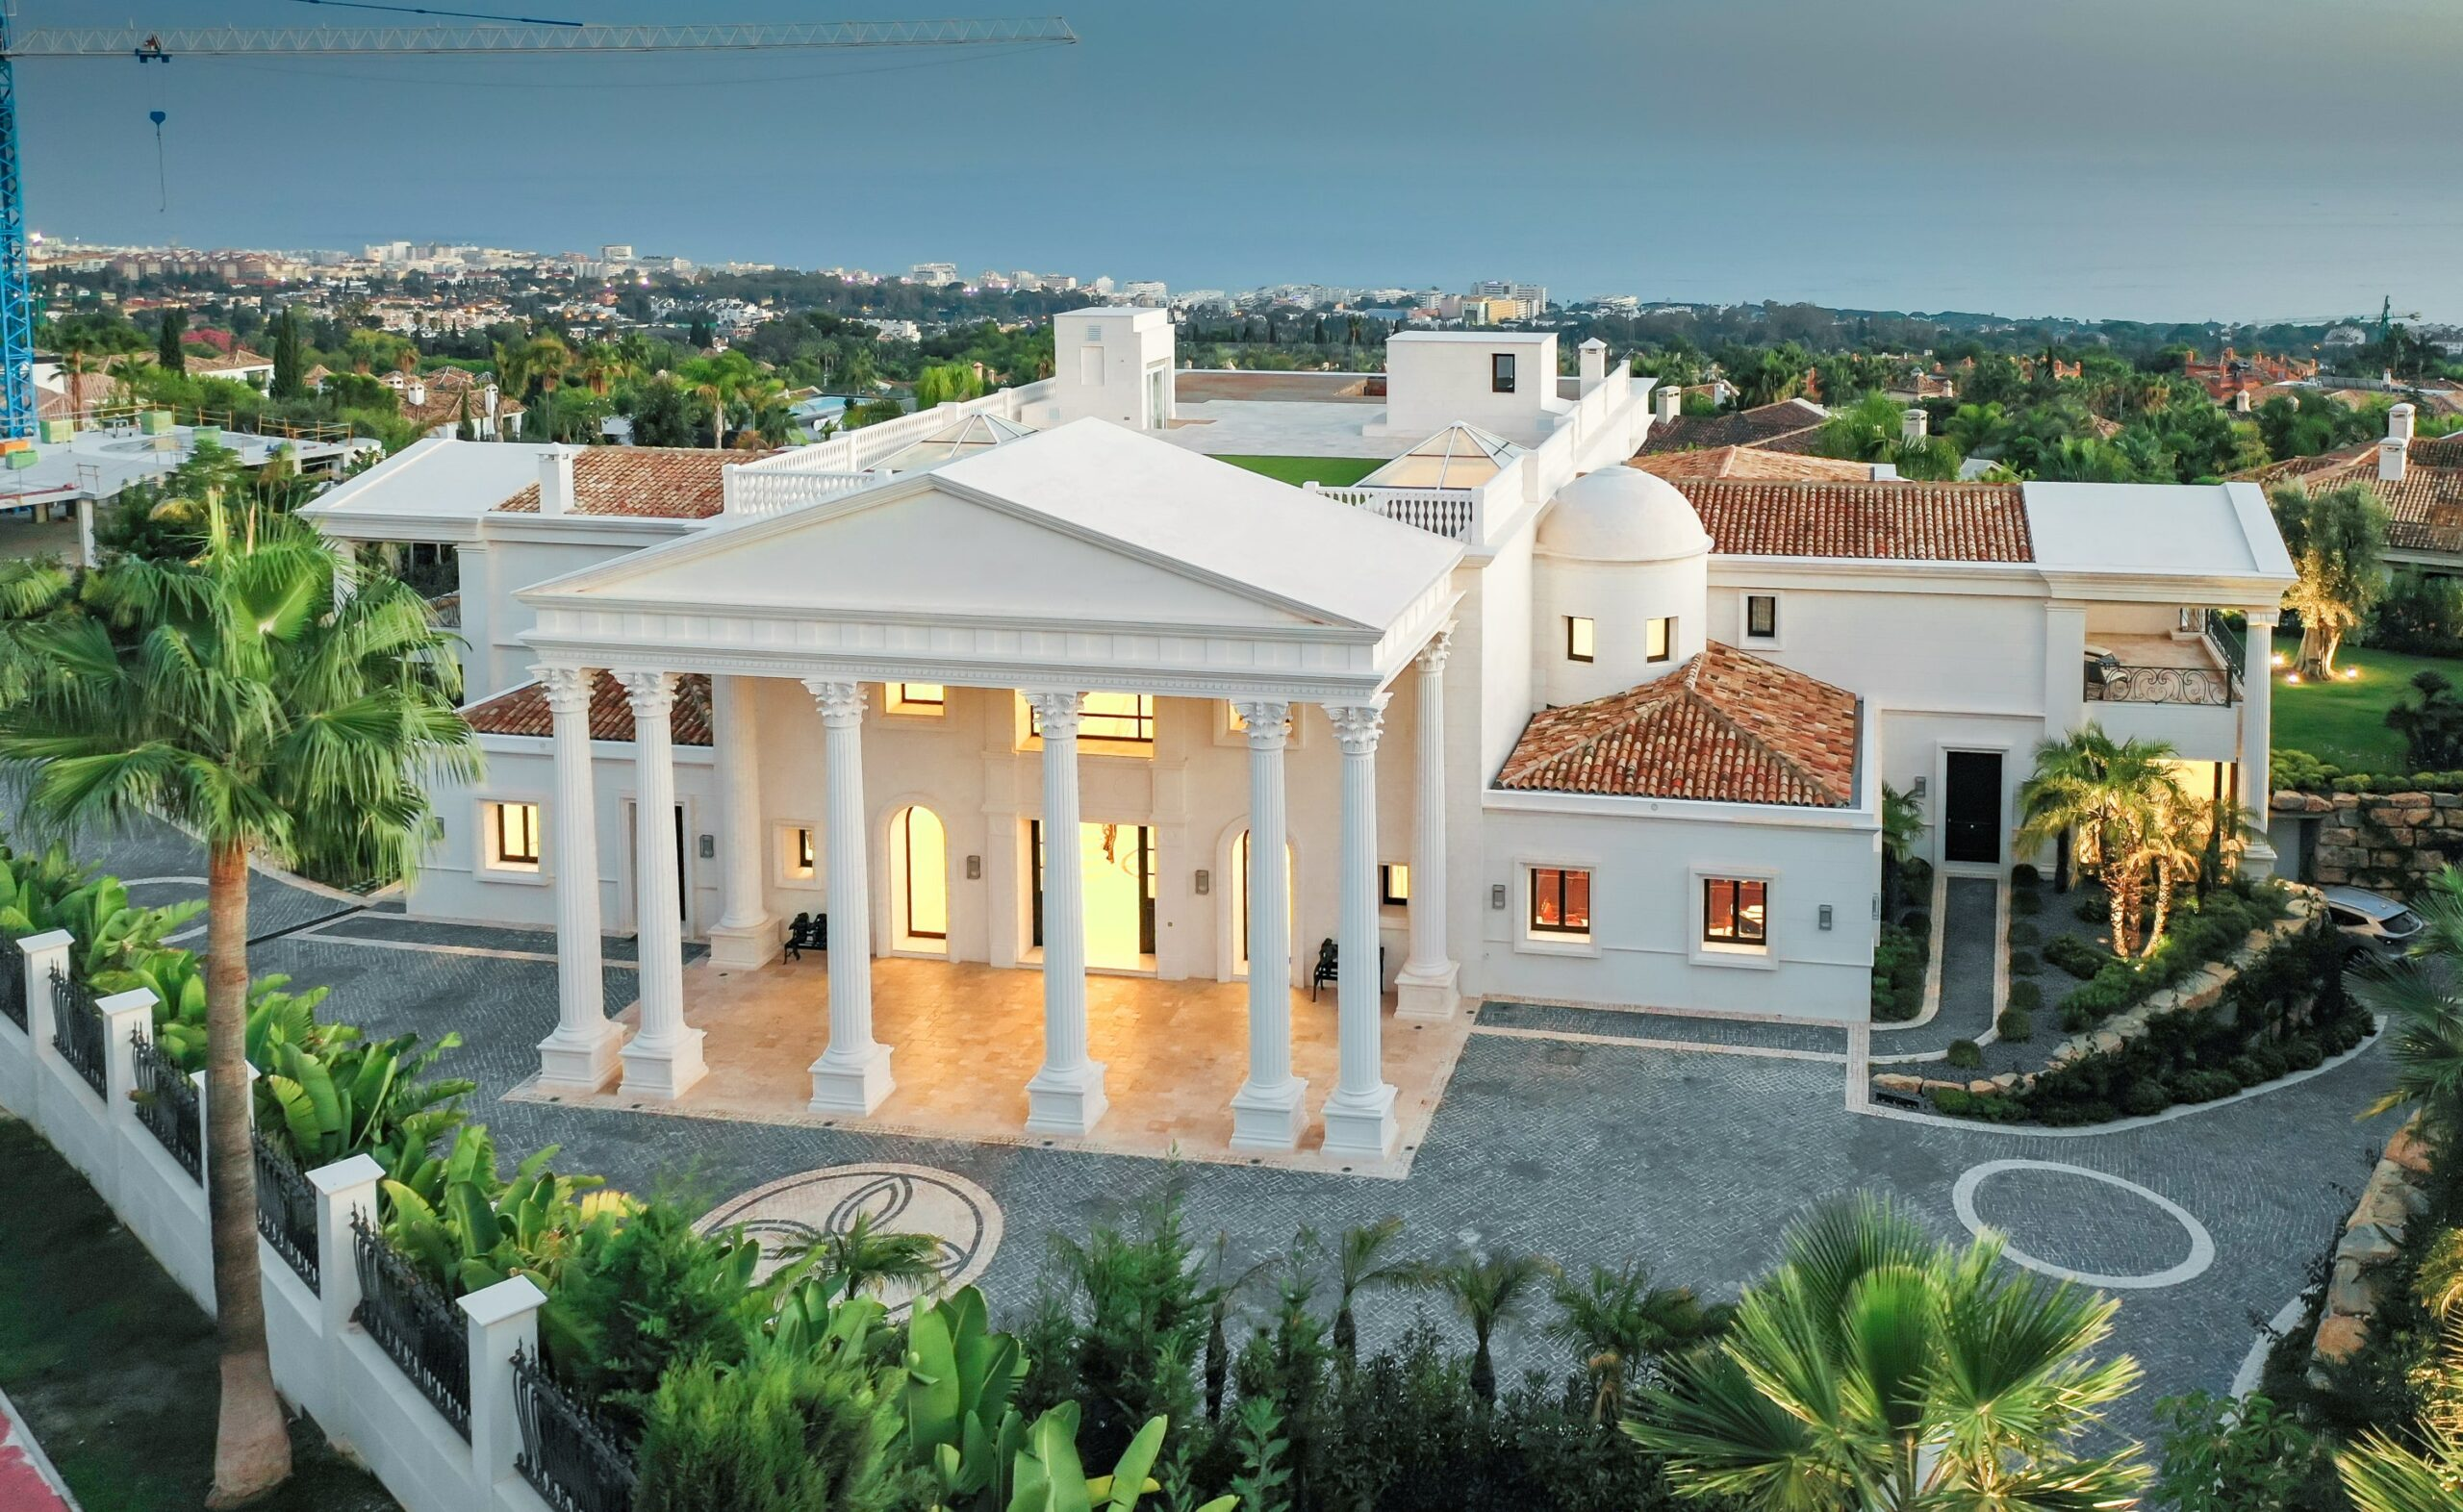 FORBES: Dream Villa In Marbella Hits The Market With $44 Million Price Tag